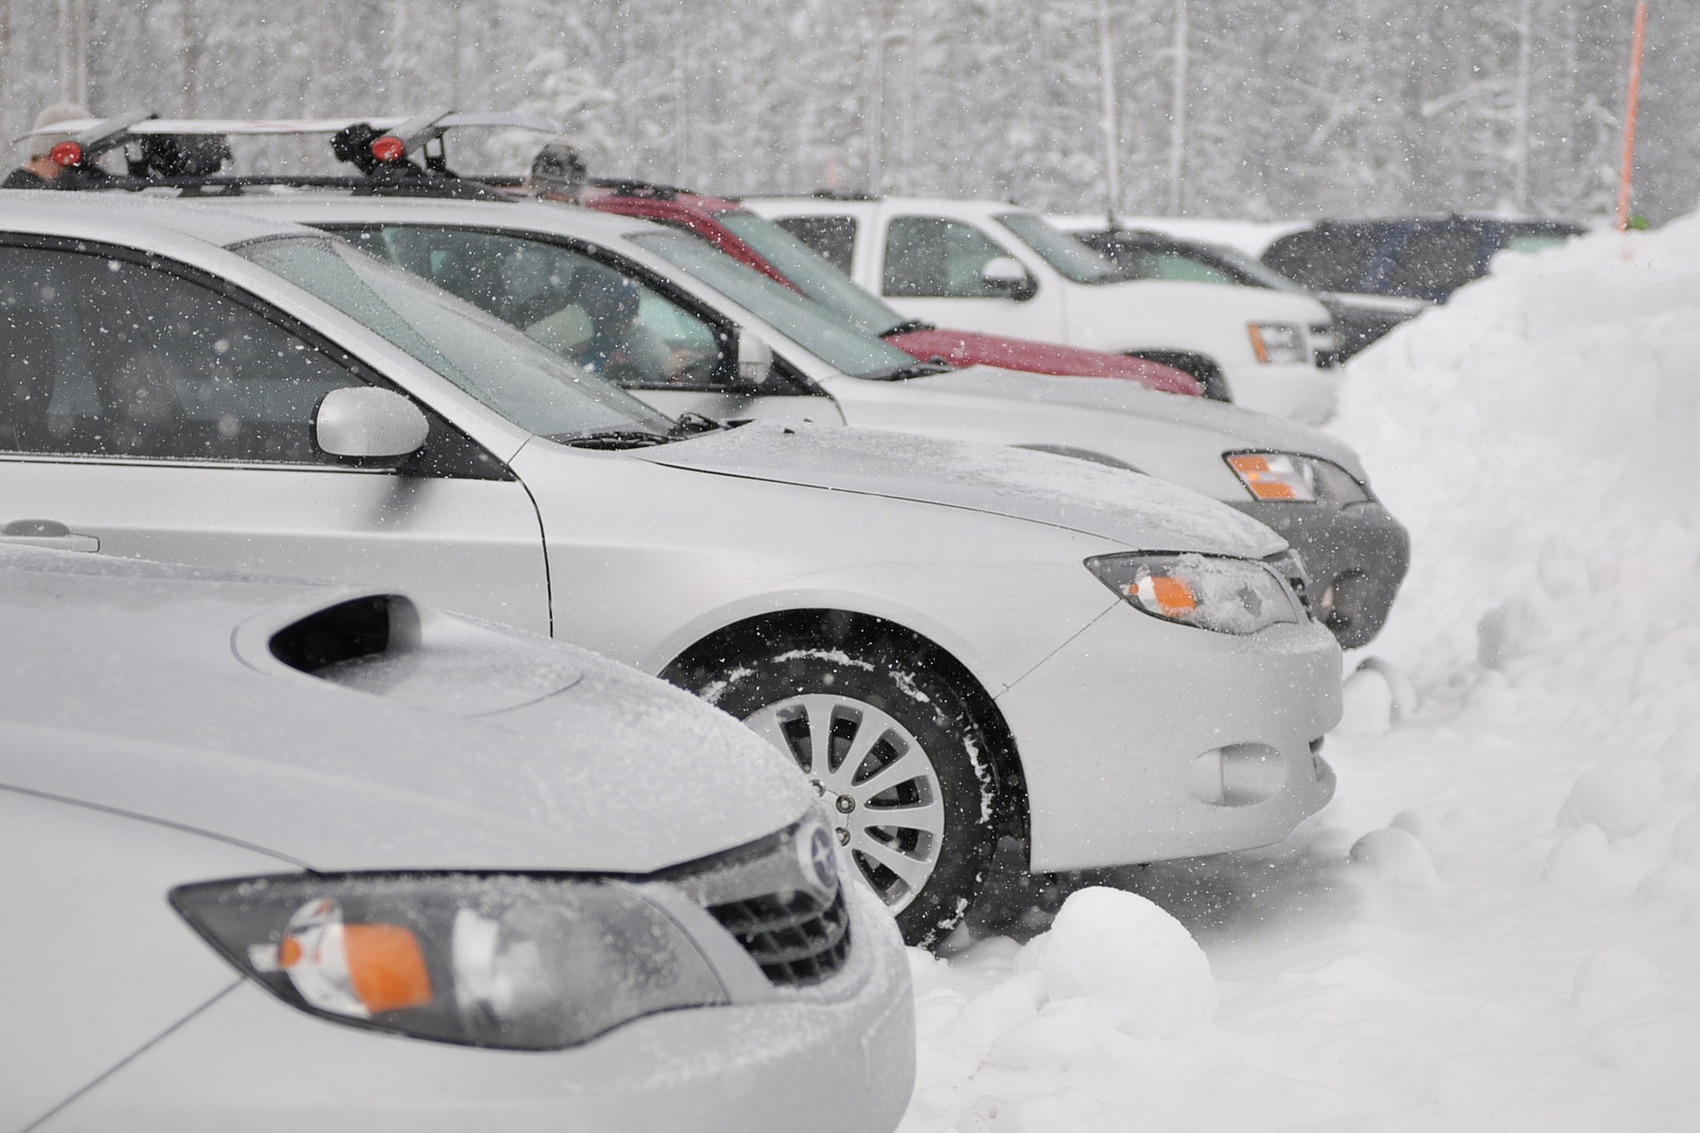 Aaa Car: Cold Weather Car Hazards